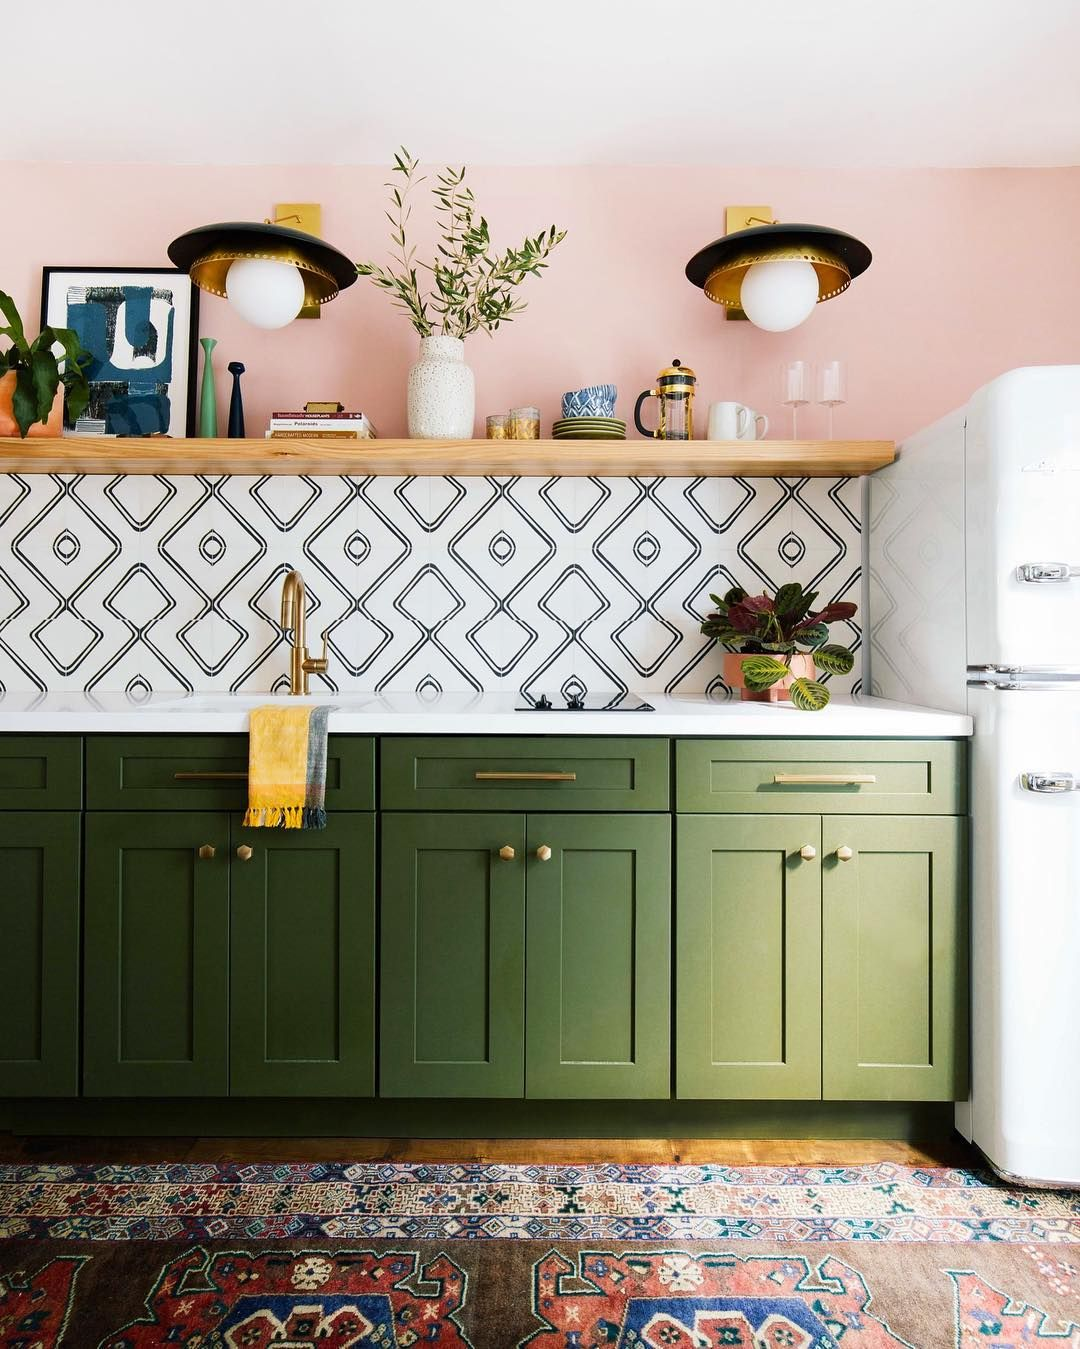 6 Kitchen Color Schemes For A Cookspace You'll Love